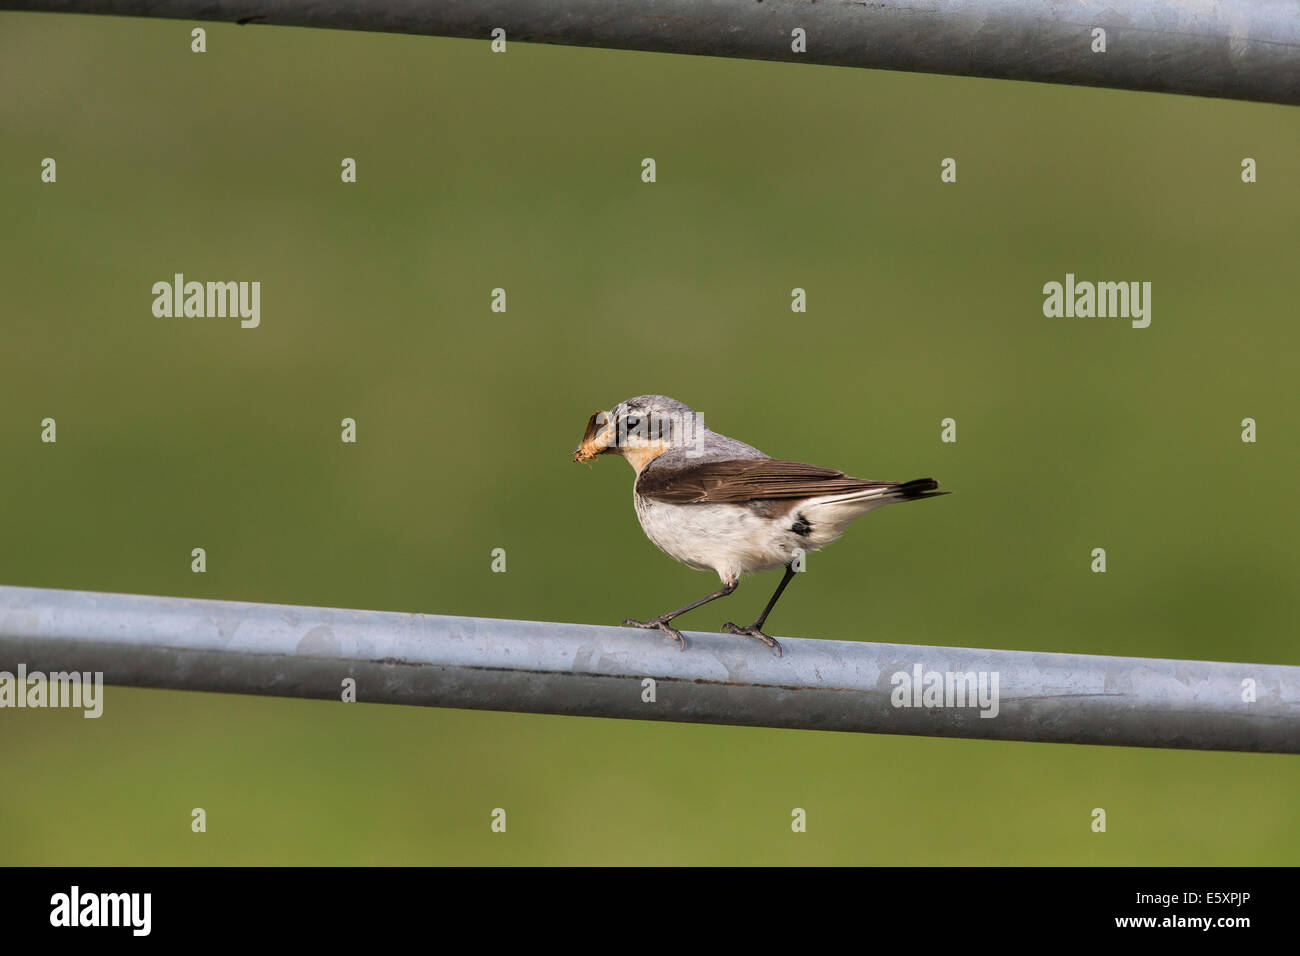 Male Northern Wheatear, Oenanthe oenanthe carrying food to young - Stock Image